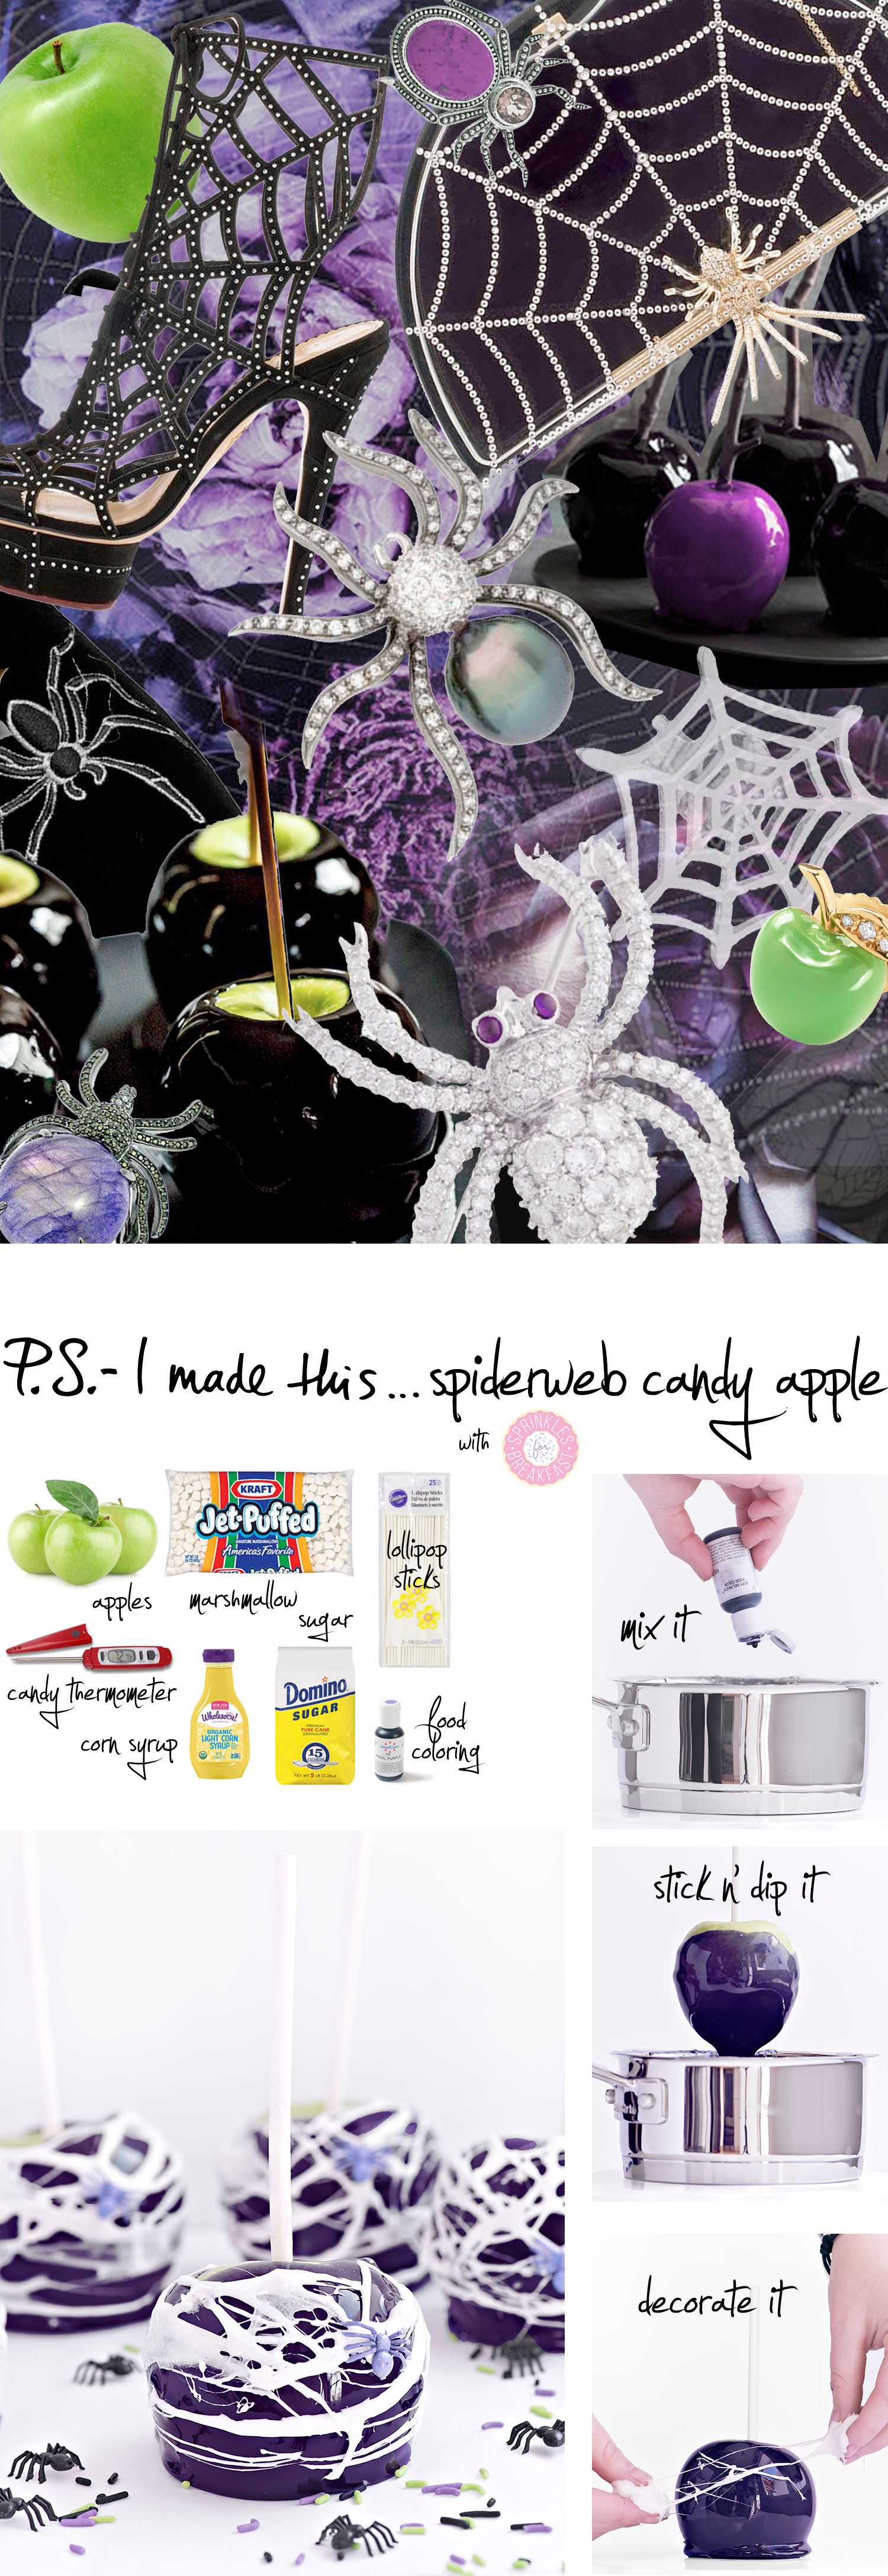 Spiderweb-Candy-Apples